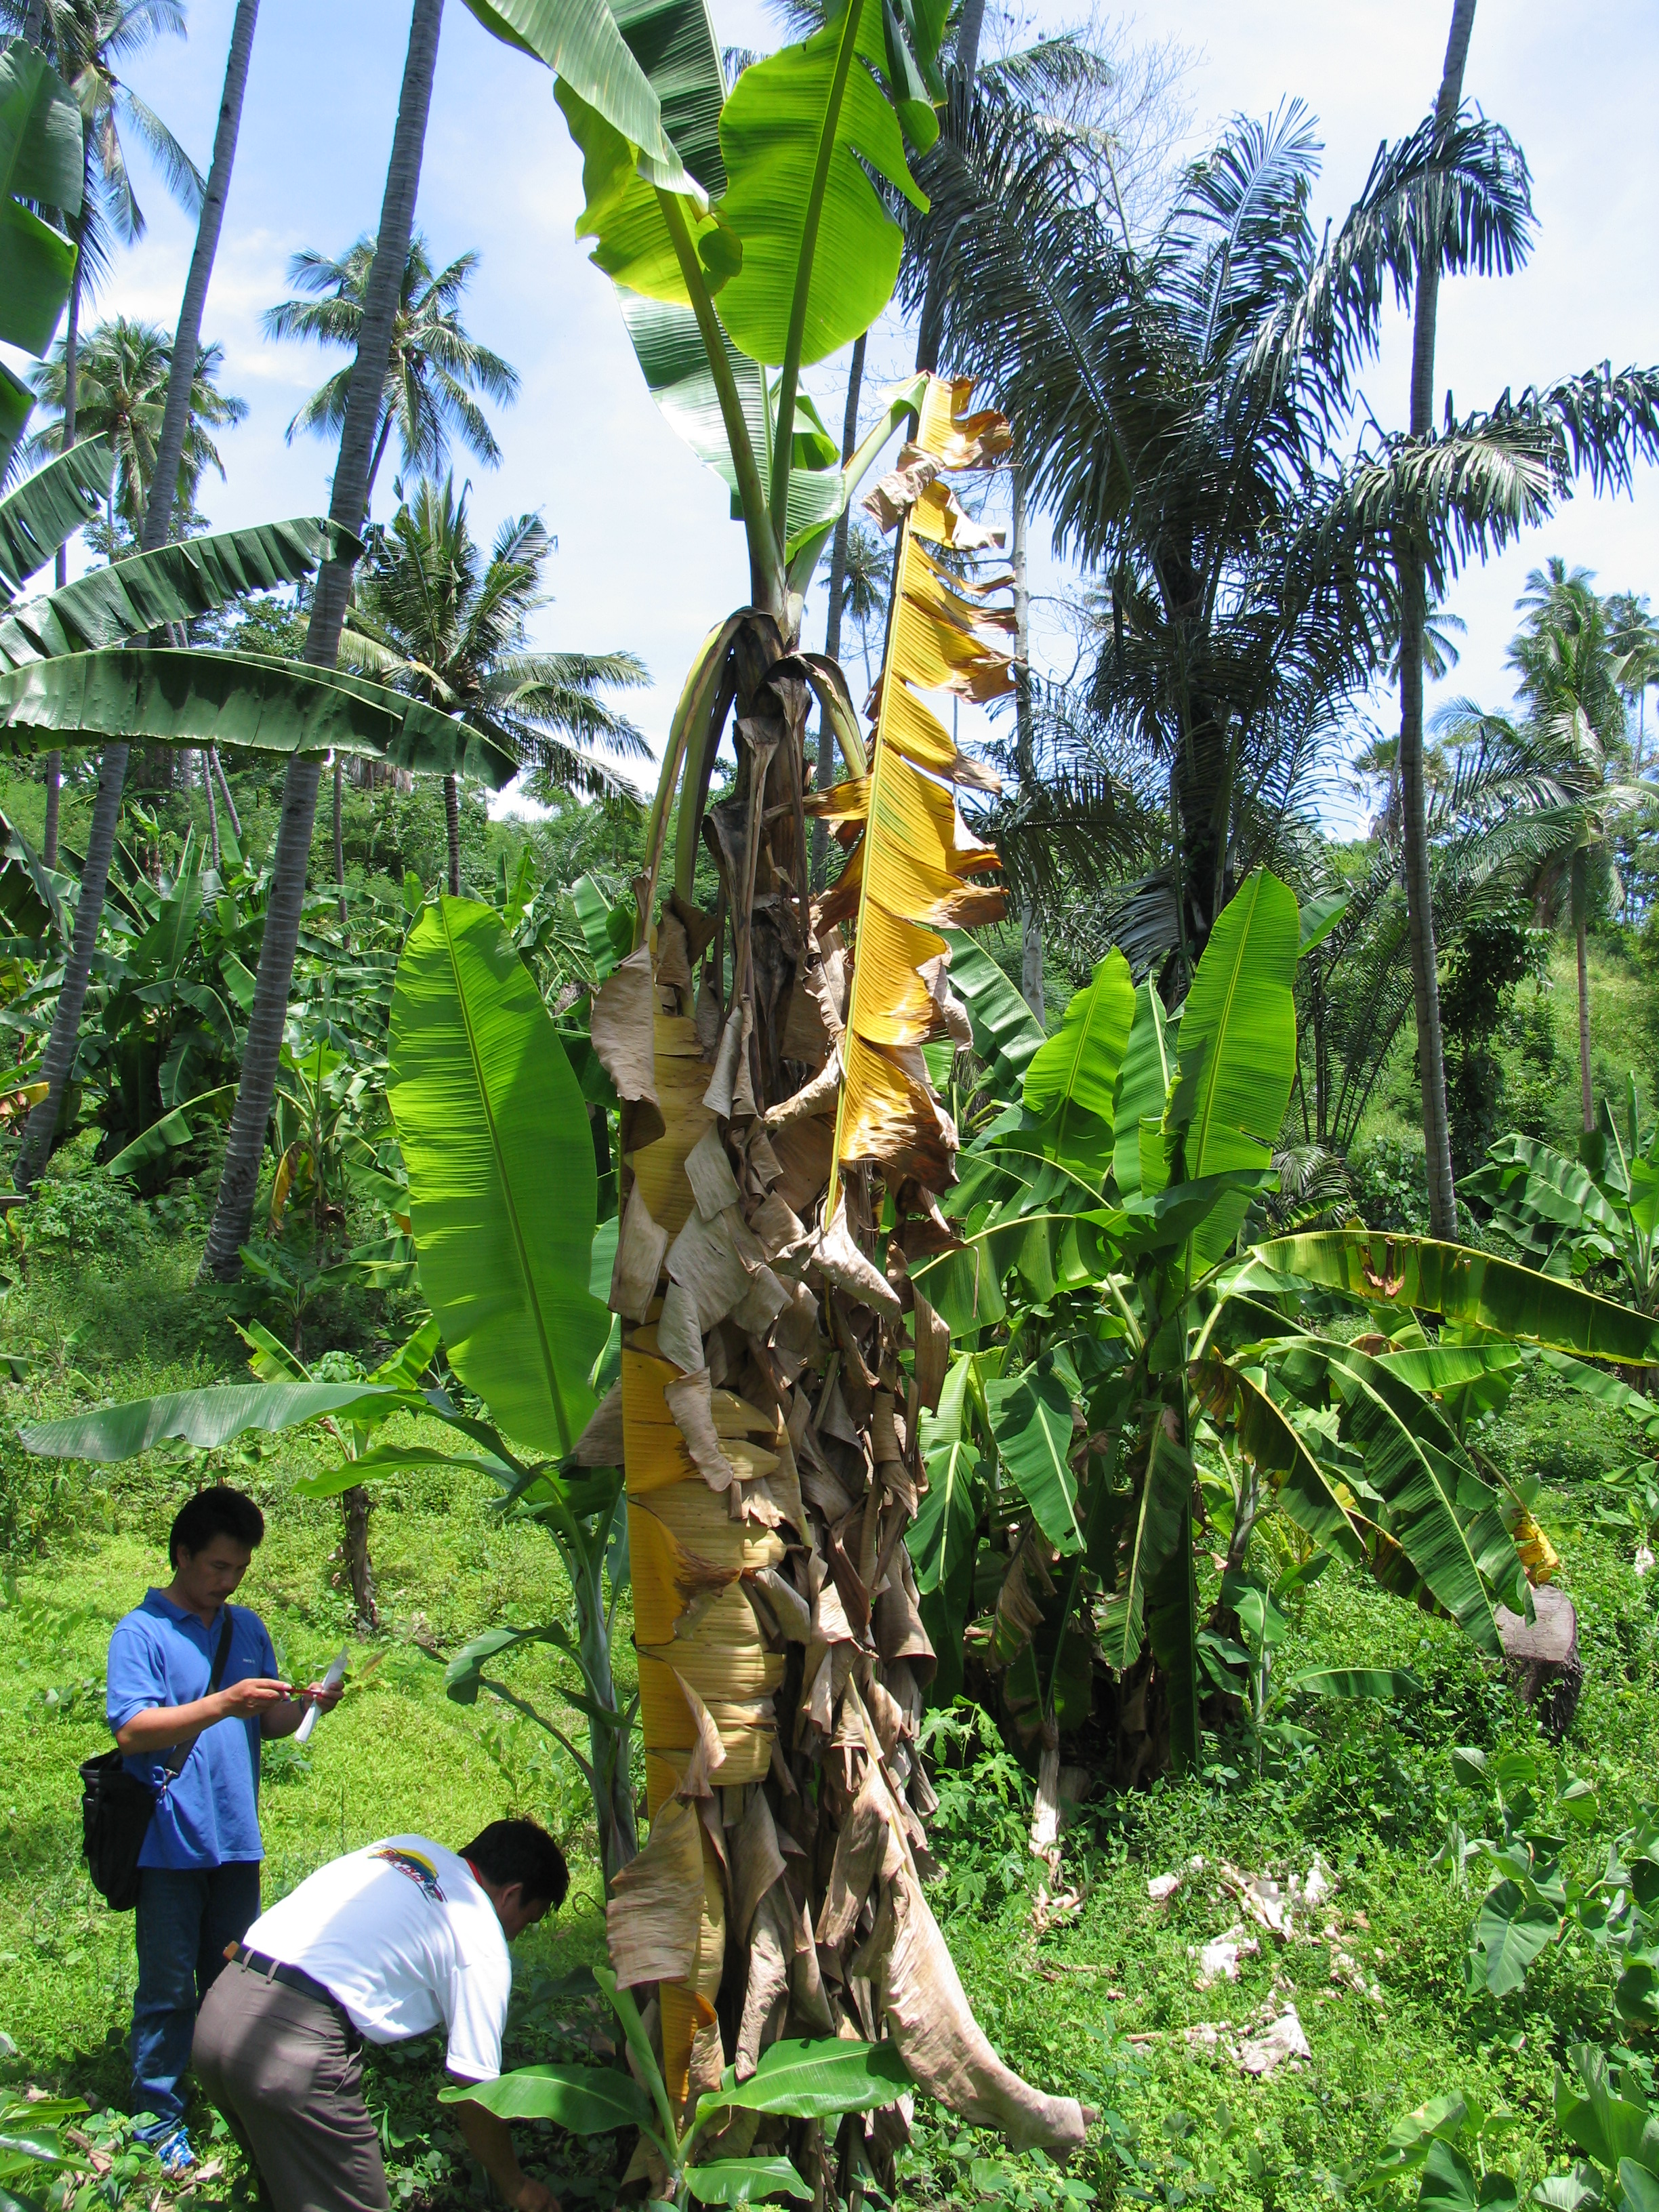 Banana tree with some green healthy leaves at top surrounded by yellowed and browned leaves that have drooped